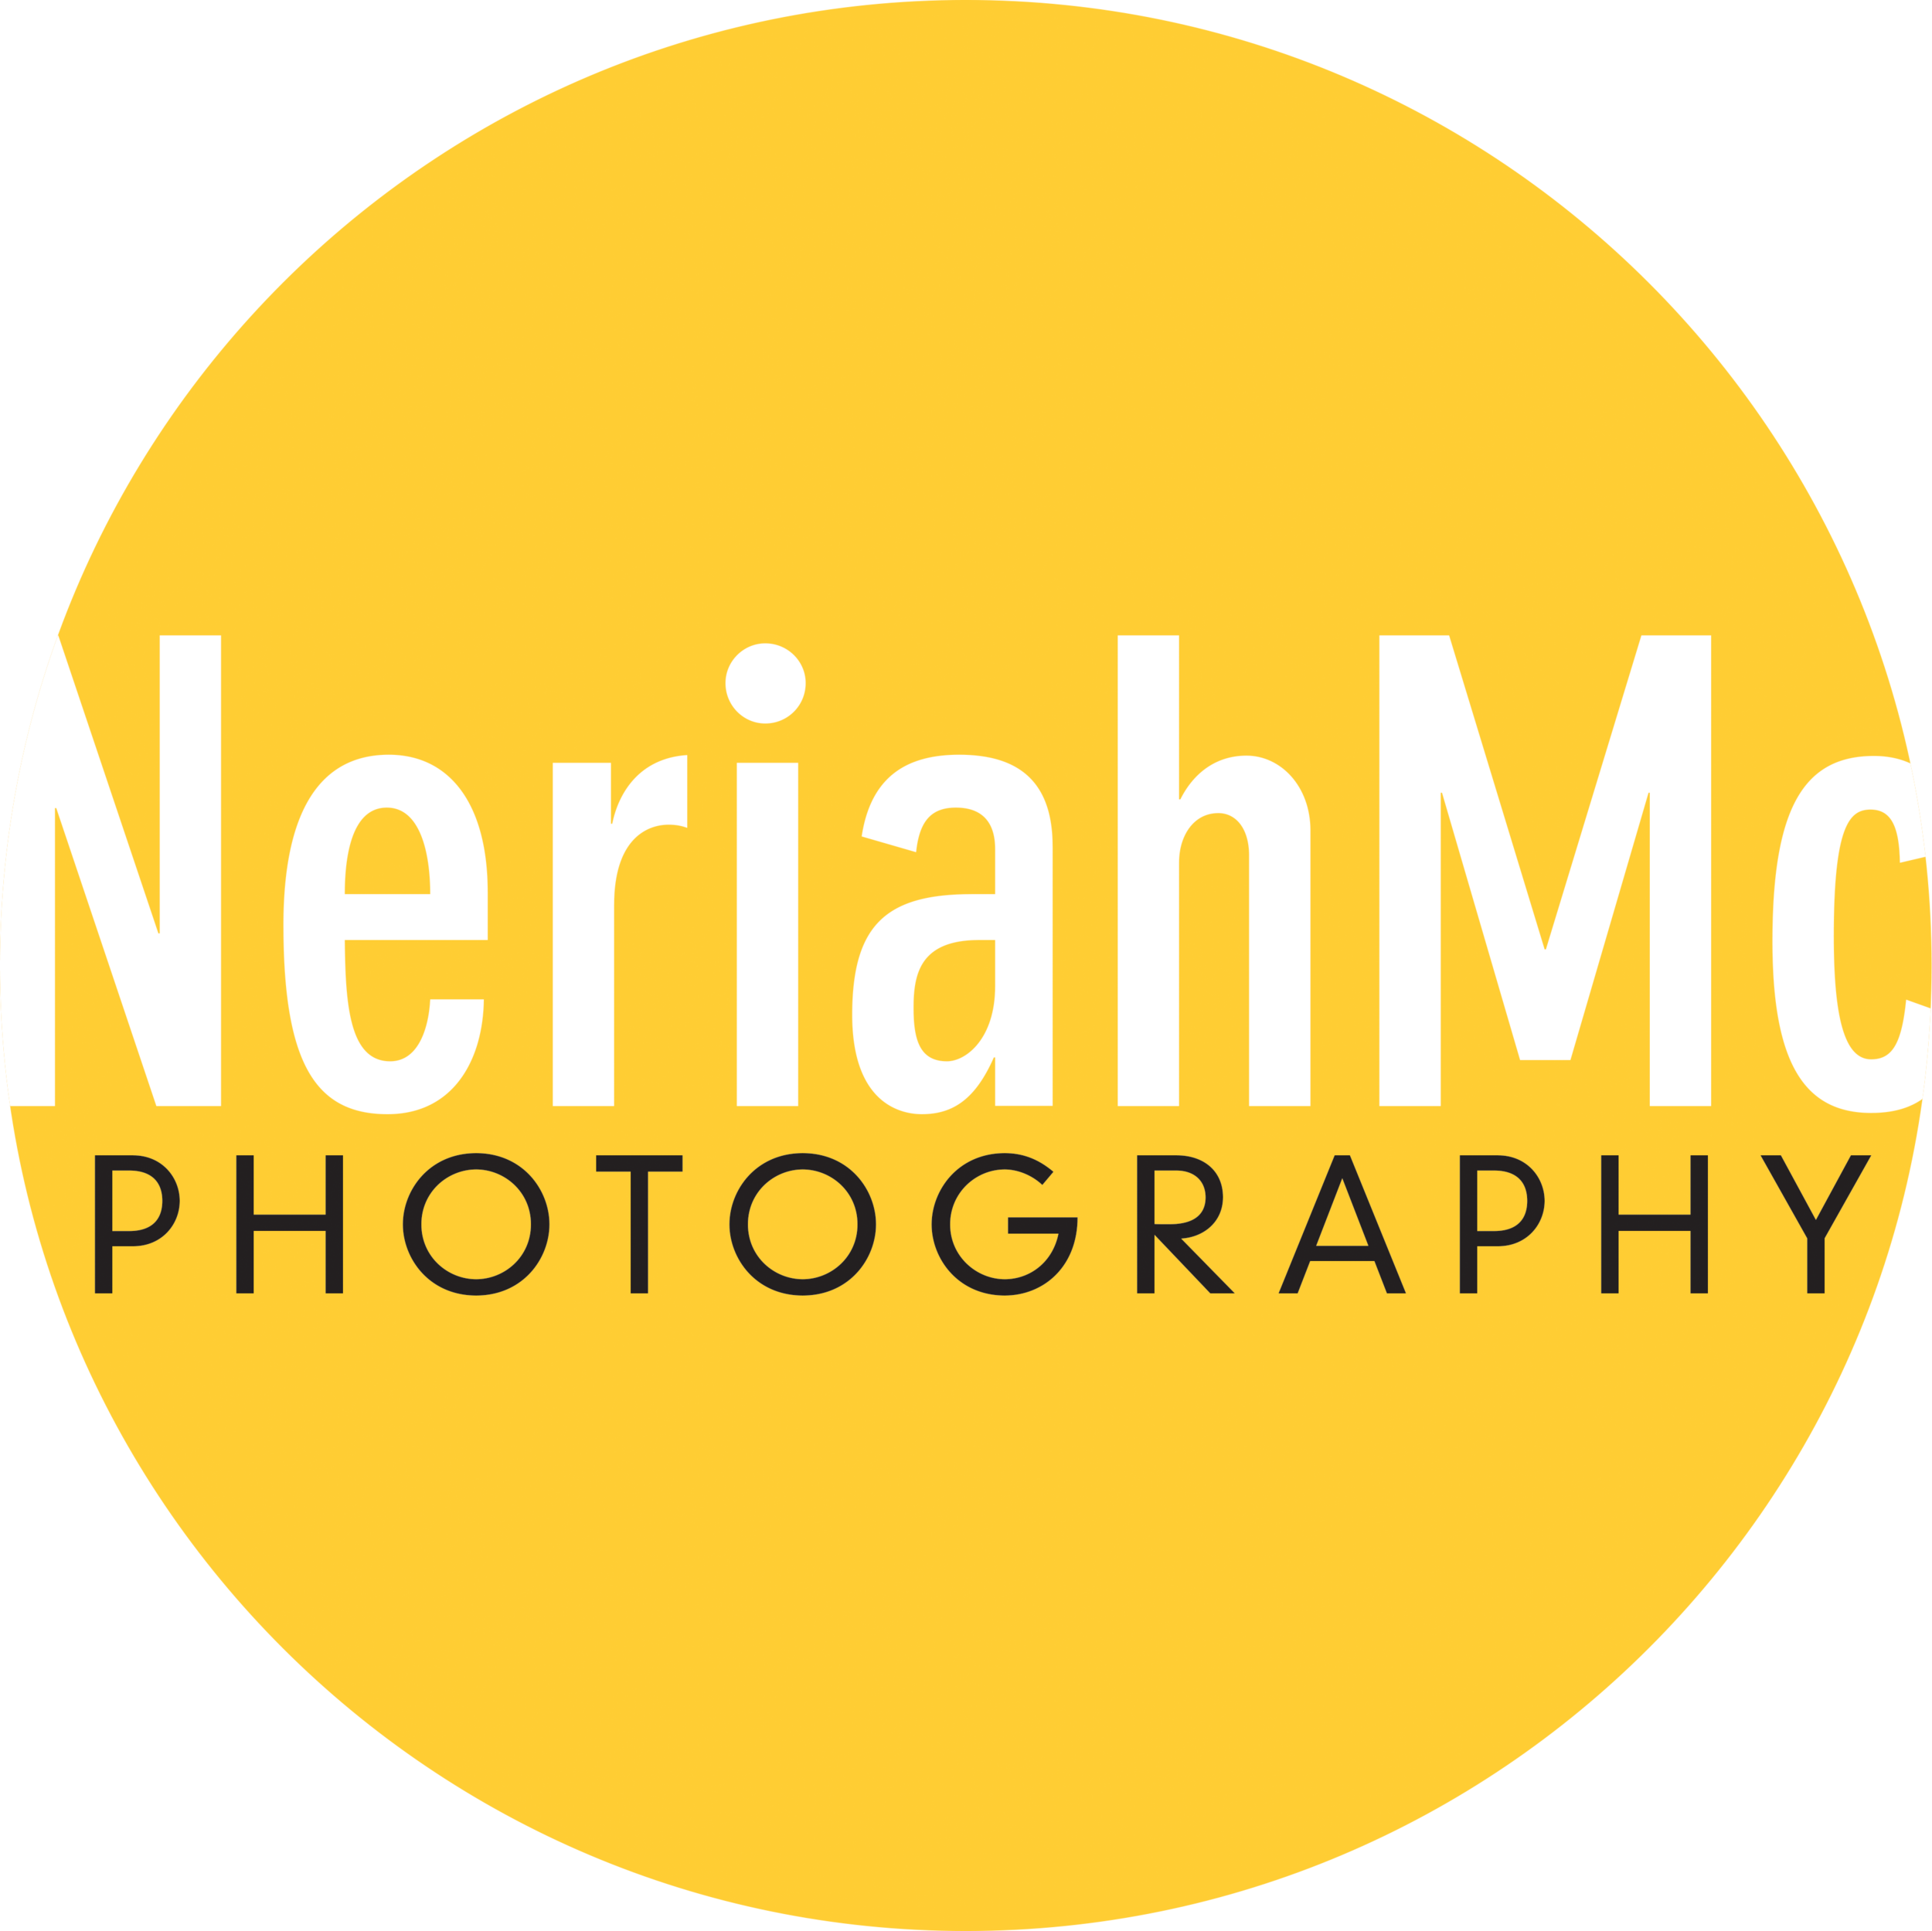 Neriah Mc Photography